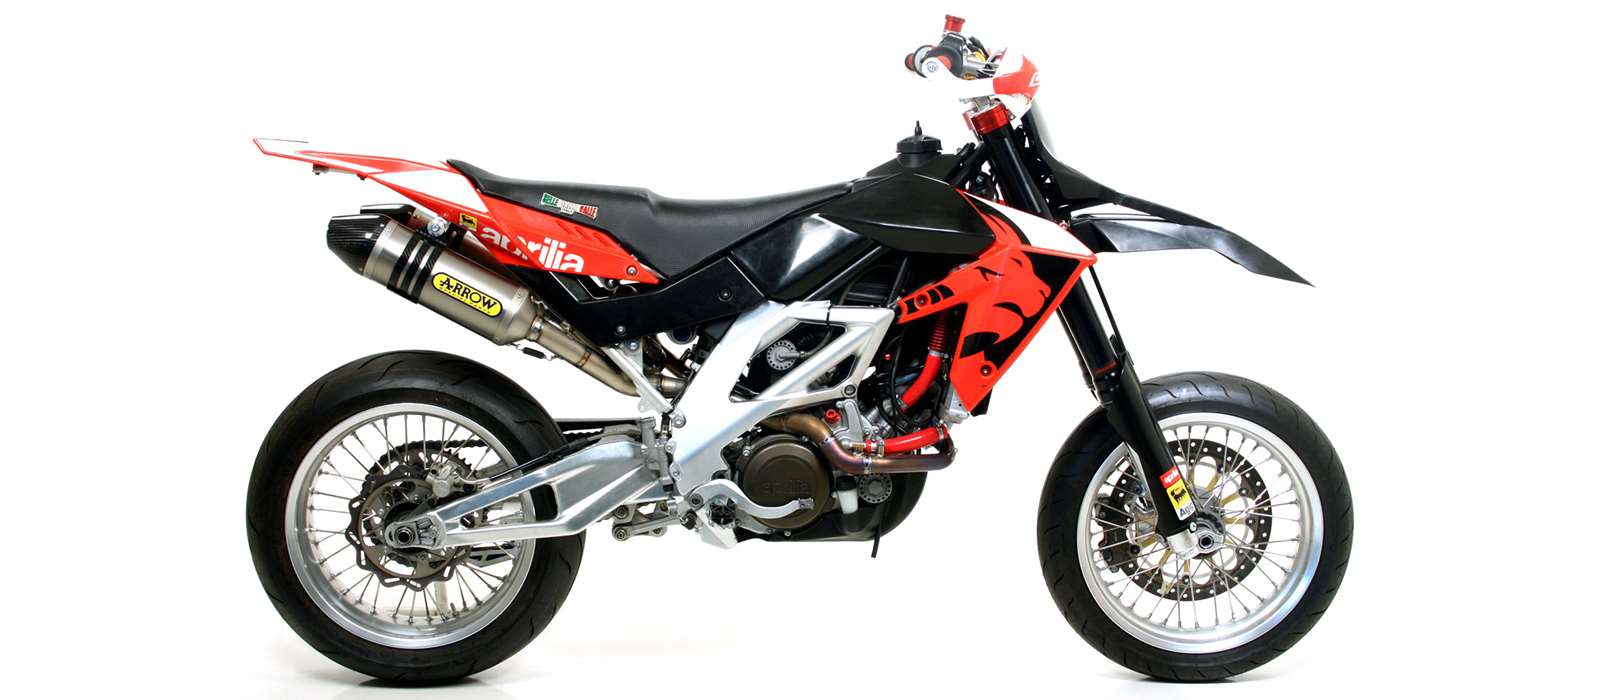 MX Comp - Aprilia, Exhaust, Arrow - Averys Motorcycles